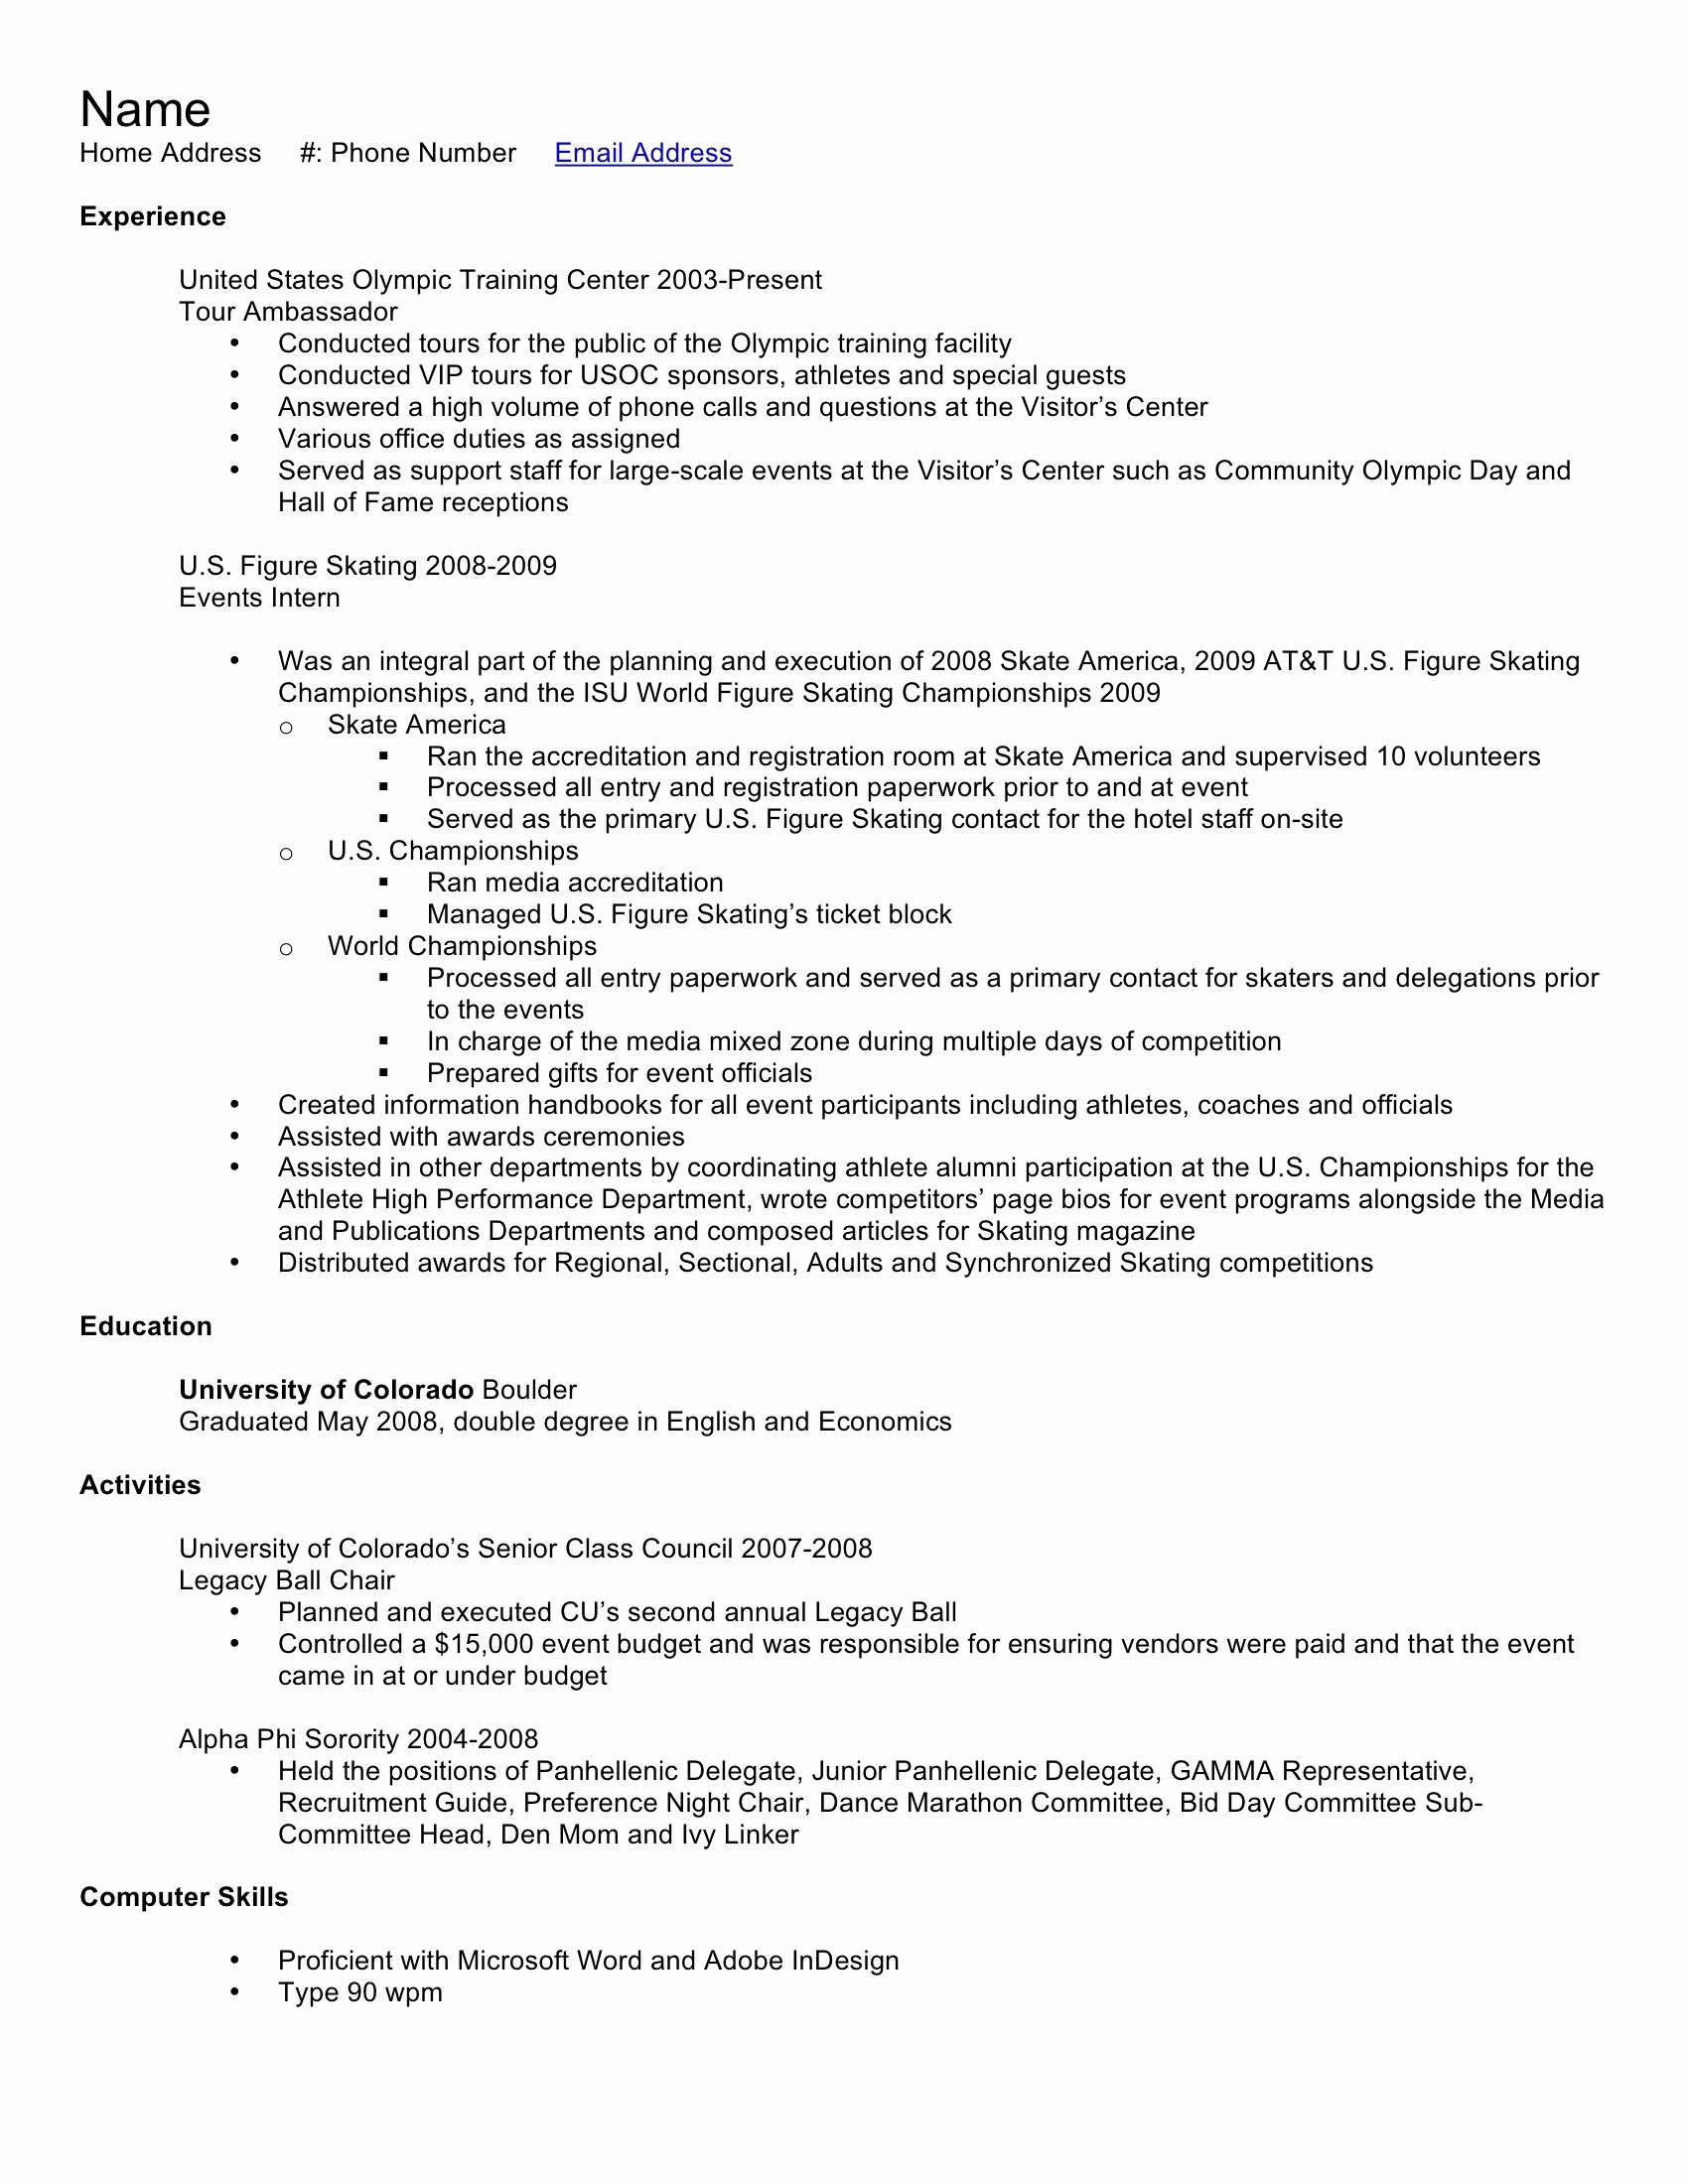 Resume for Entry Level Position Elegant Entry Level Resume Samples High School Graduate Save